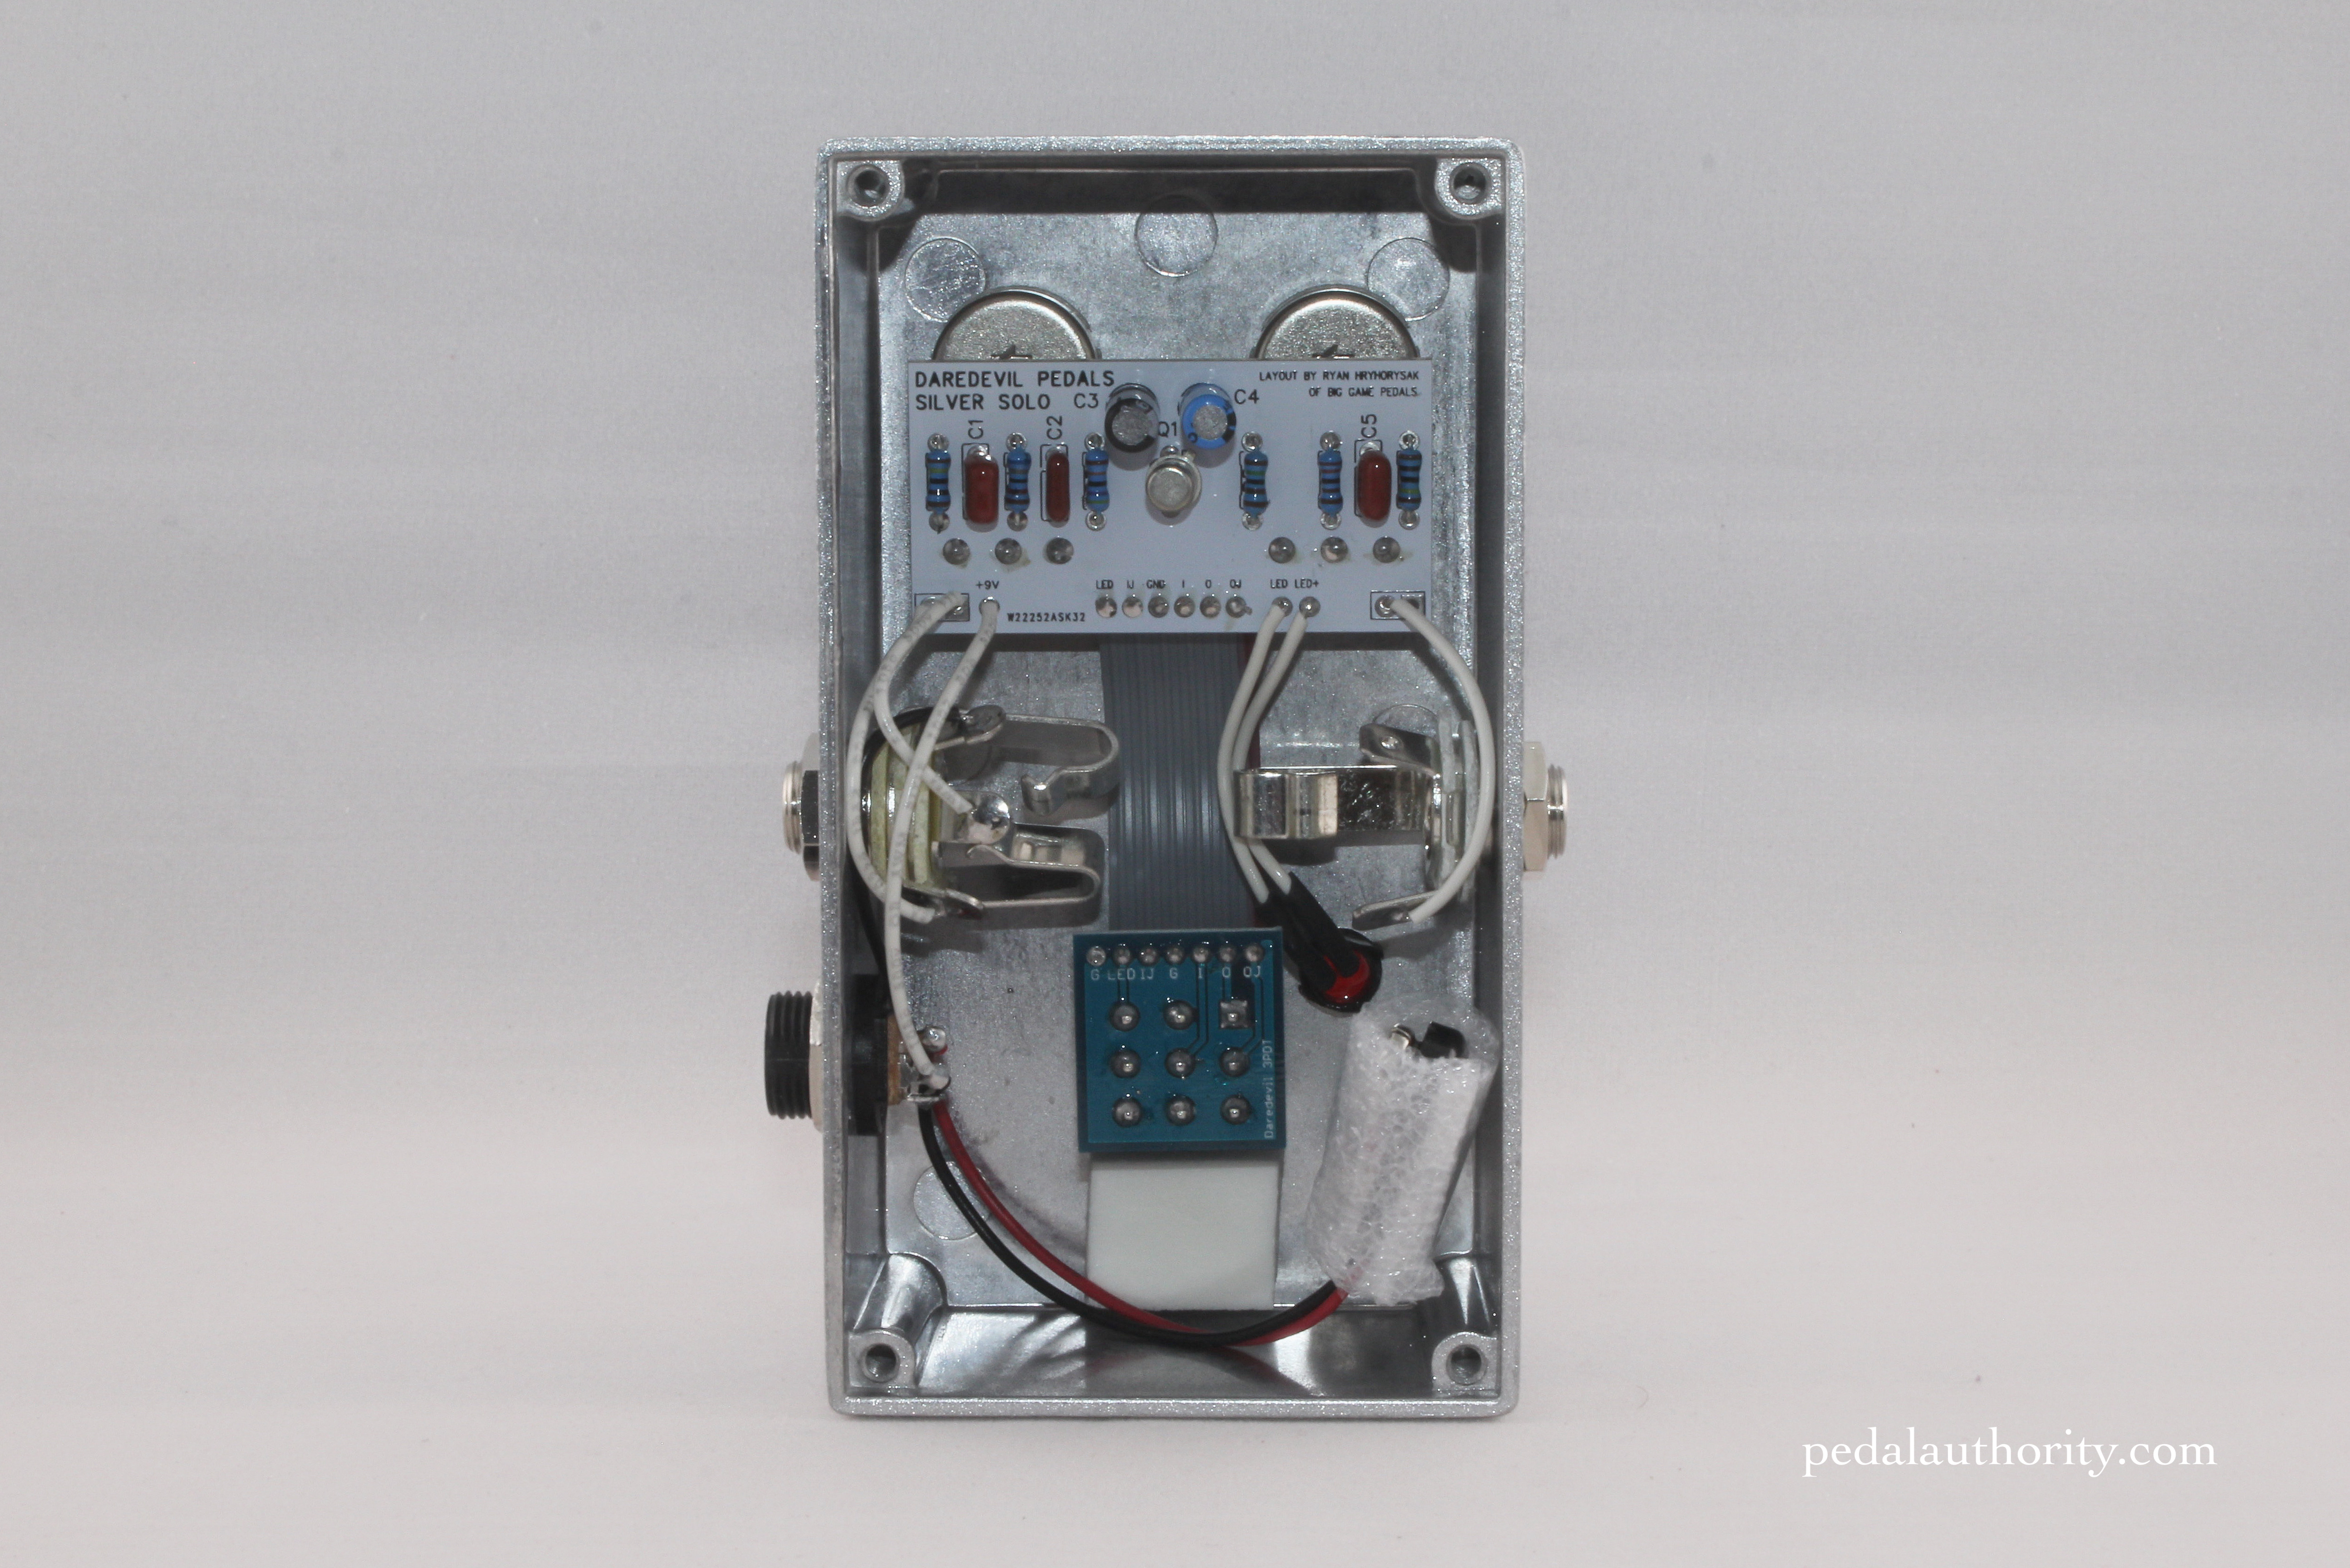 Review Daredevil Silver Solo Treble Booster Pedal Authority Re Vero Wah Circuit Features